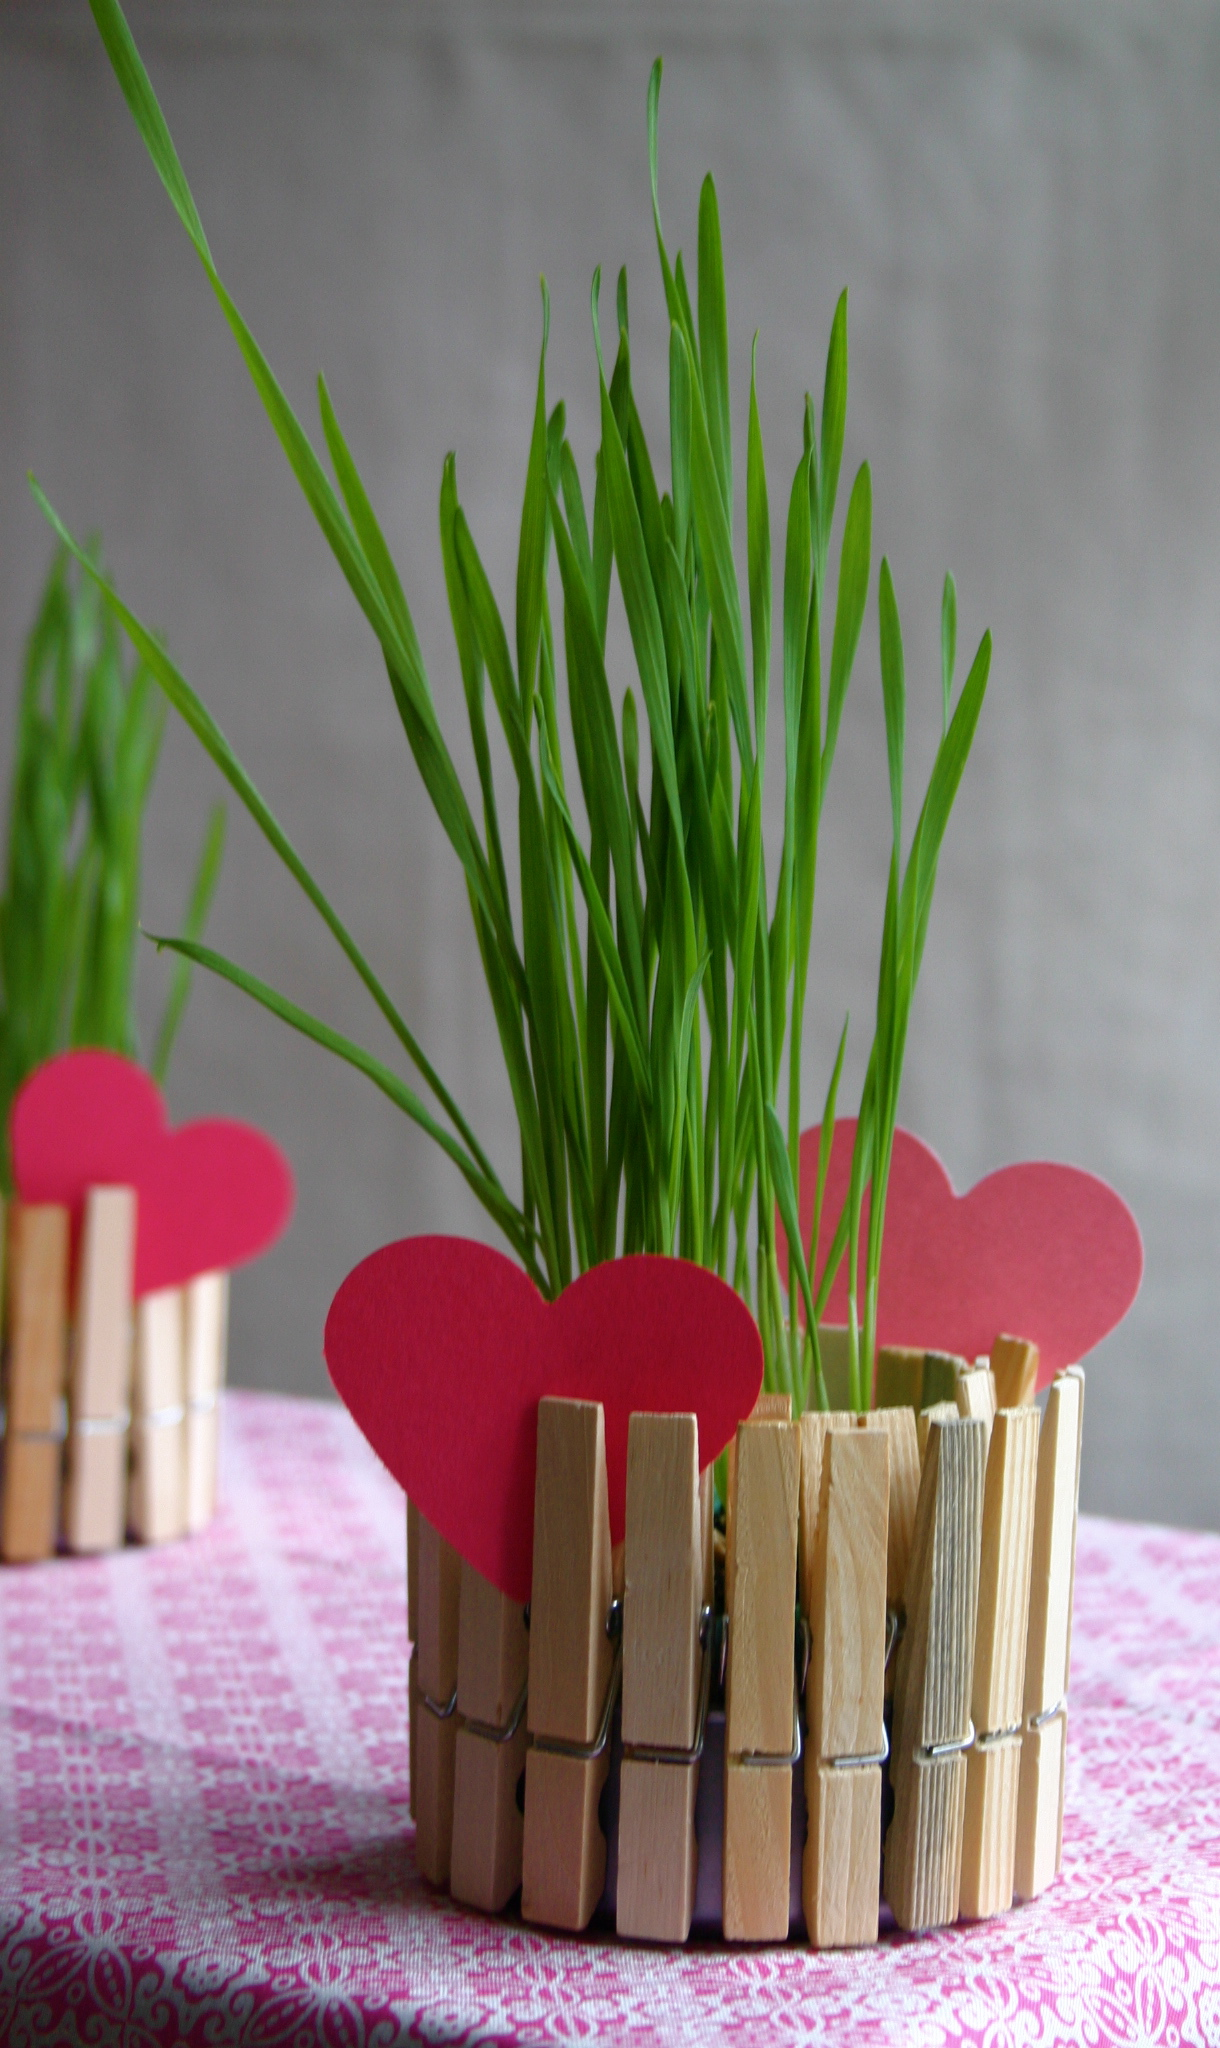 Children love crafts that are simple, turn out well and can serve as a suitable gift for Mom - this craft is all of that.